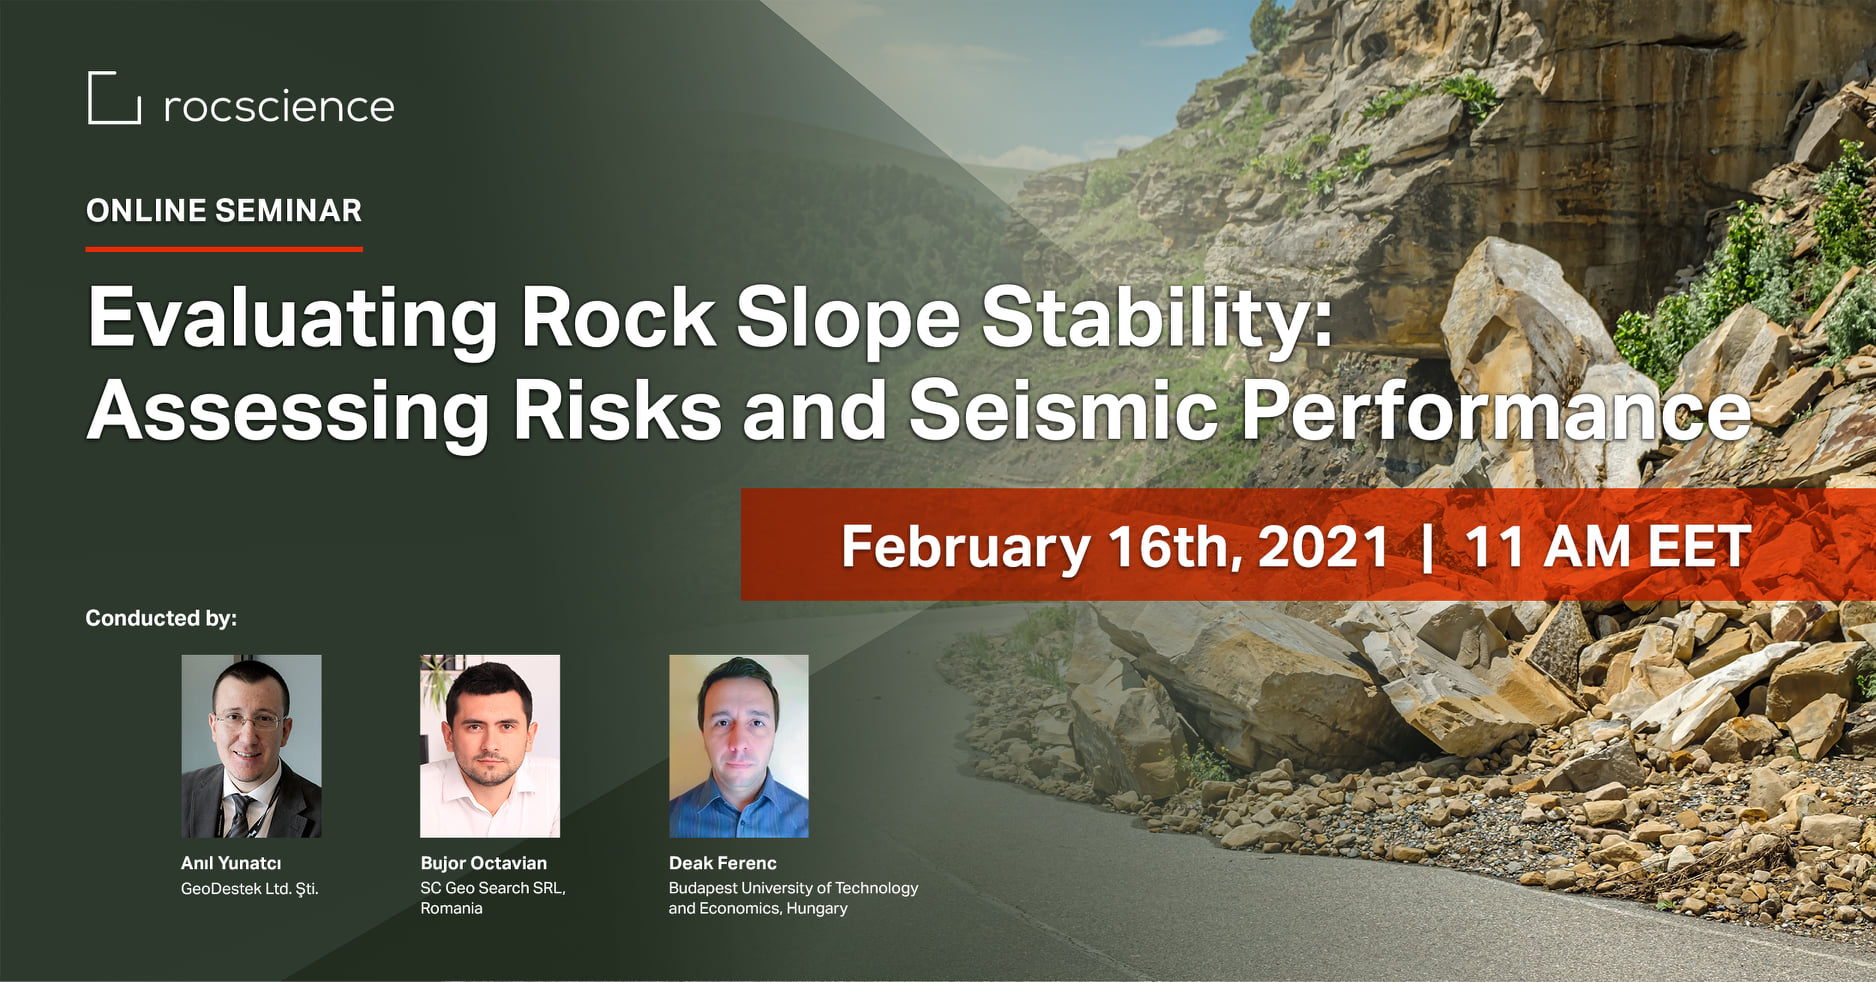 Rocscience Seminar: Evaluating Rock Slope Stability: Assessing Risks and Seismic Performance